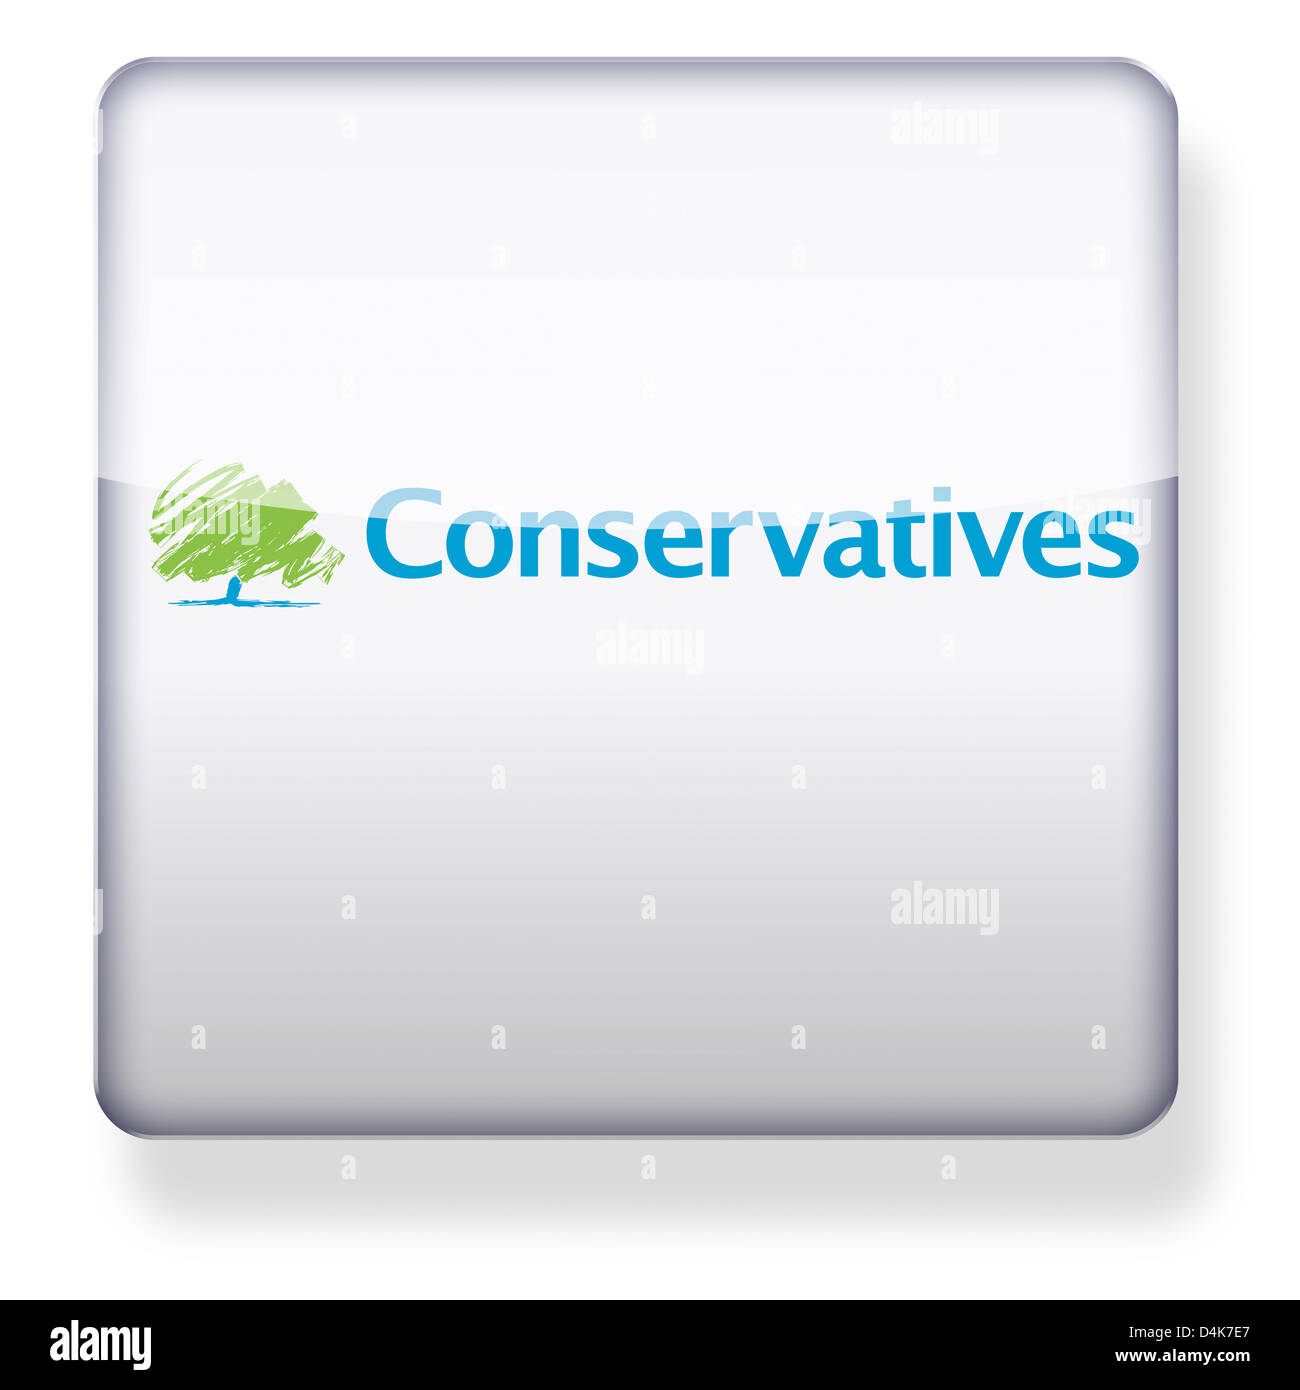 Conservative Party logo as an app icon. Clipping path included. - Stock Image